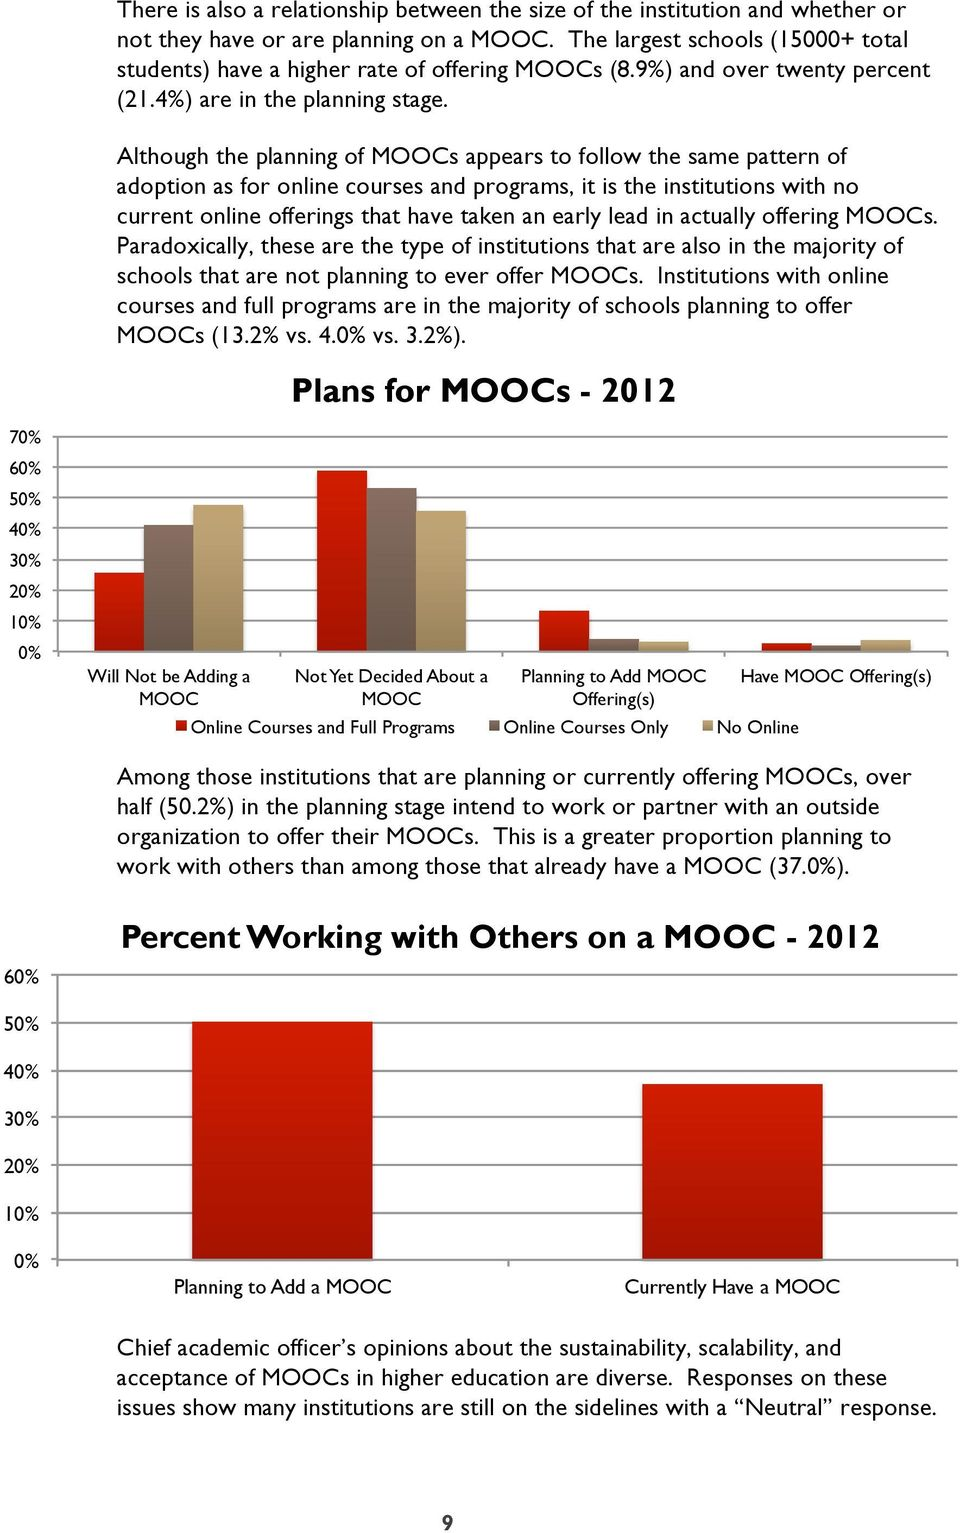 Although the planning of MOOCs appears to follow the same pattern of adoption as for online courses and programs, it is the institutions with no current online offerings that have taken an early lead